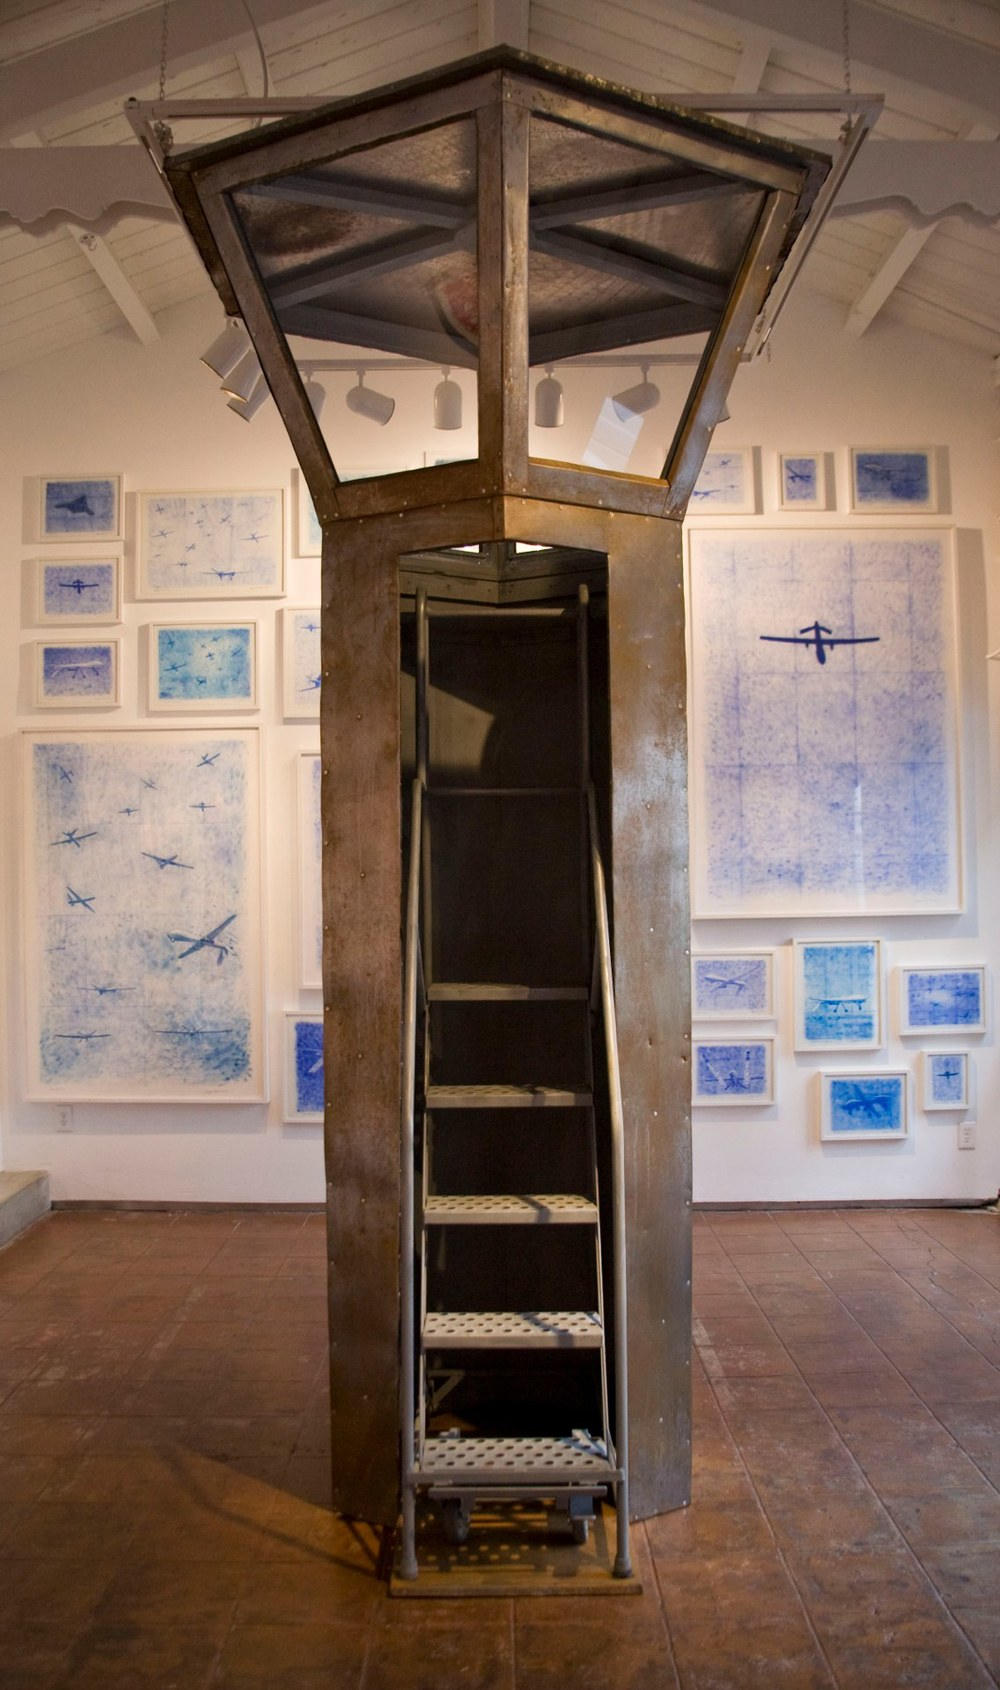 Stephen Whisler Observer, 2014 Sheet steel, wood, plexiglass 132 x 60 x 60 inches